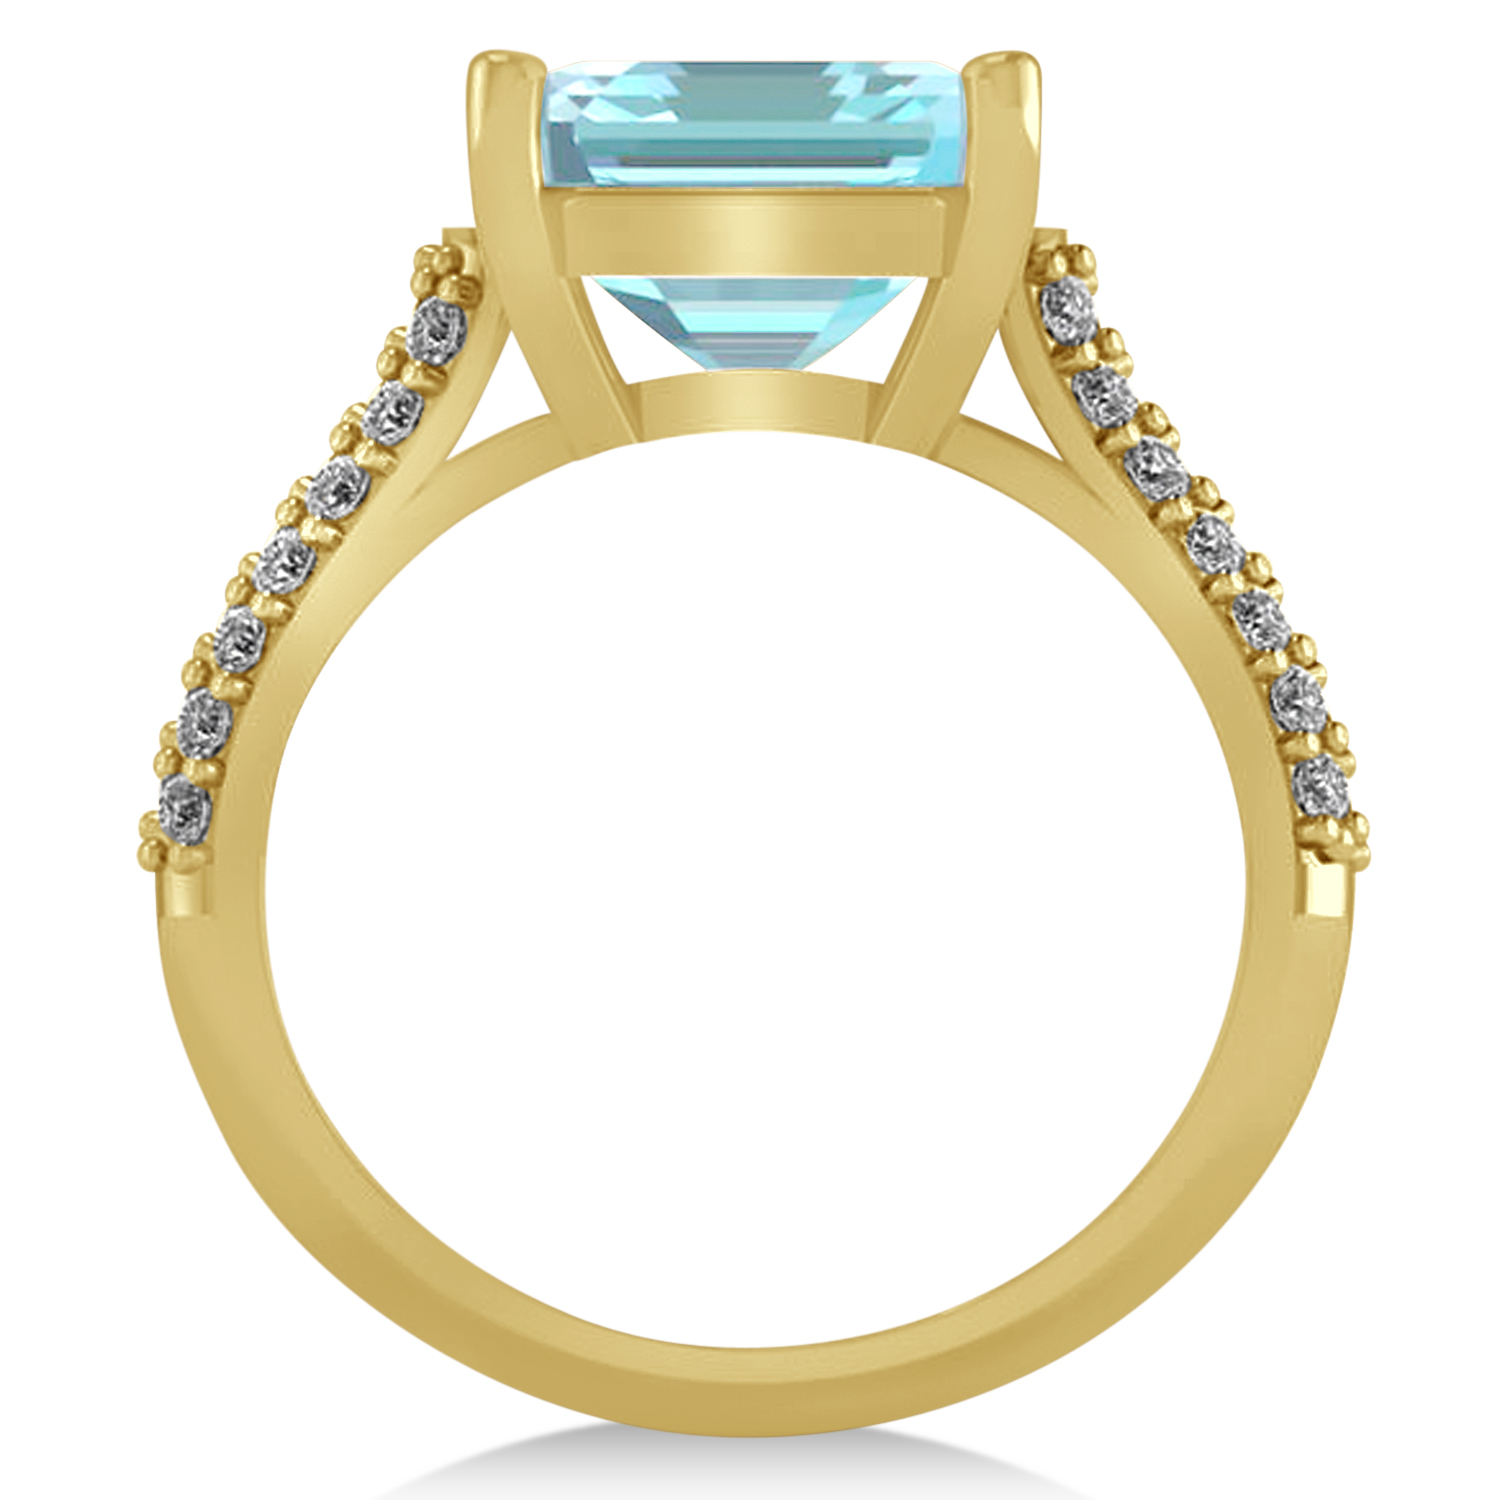 Oval Aquamarine & Diamond Engagement Ring 14k Yellow Gold